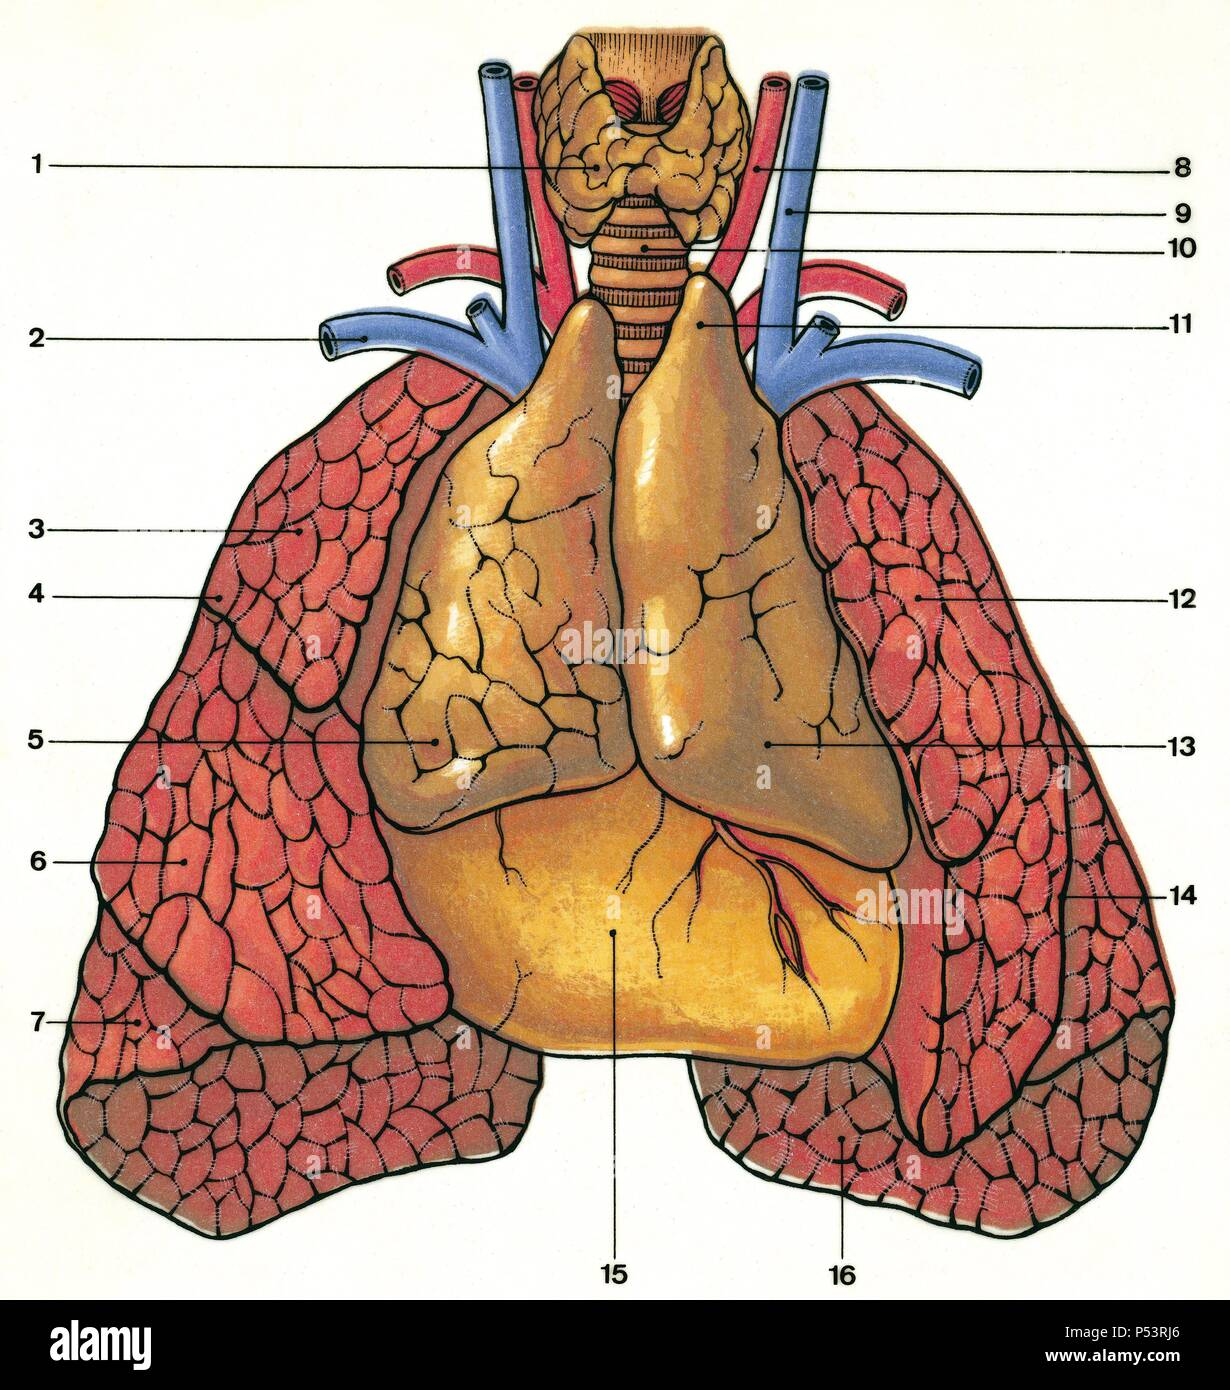 Thymus Gland Drawing Stock Photos Thymus Gland Drawing Stock